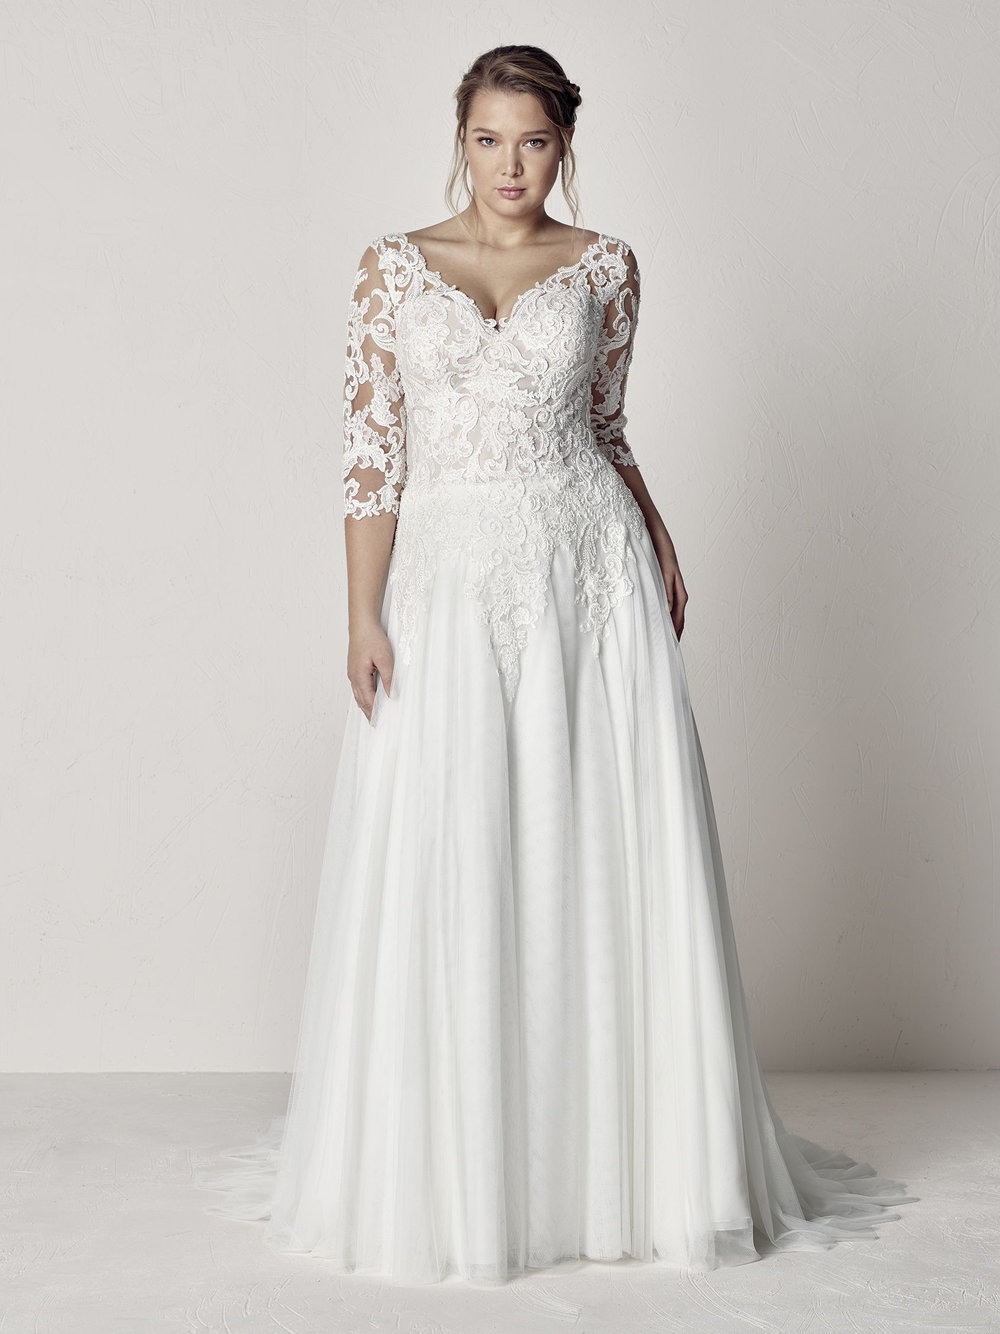 PronoviasBridal-BridesbyYoung-PlusSizeWeddingDress-Etoila.jpg